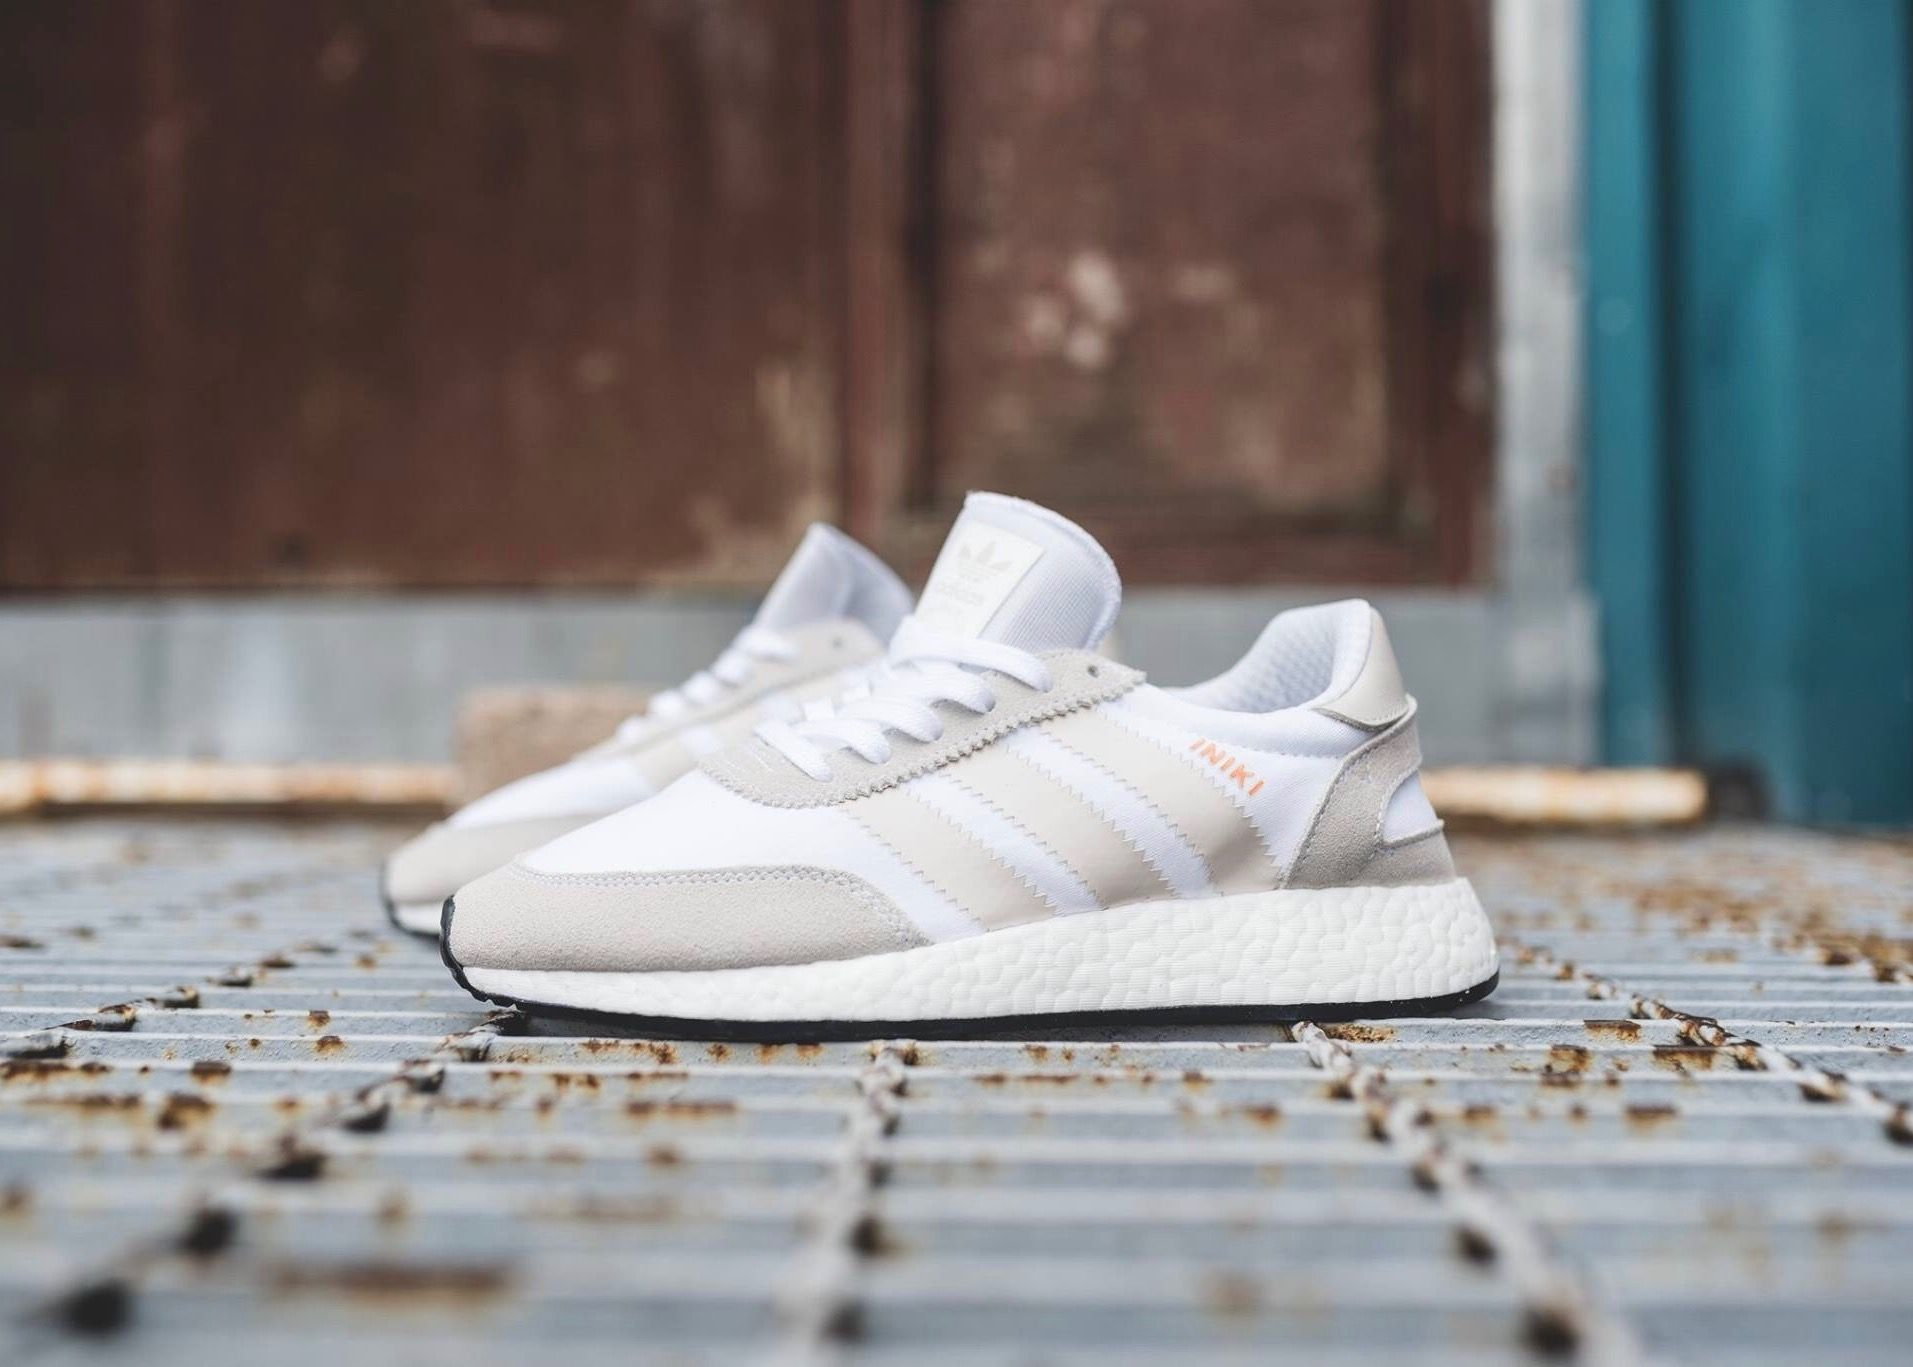 Details about Adidas I 5923 Iniki Runner Boost BY9096 Blue Sneaker Shoes Women